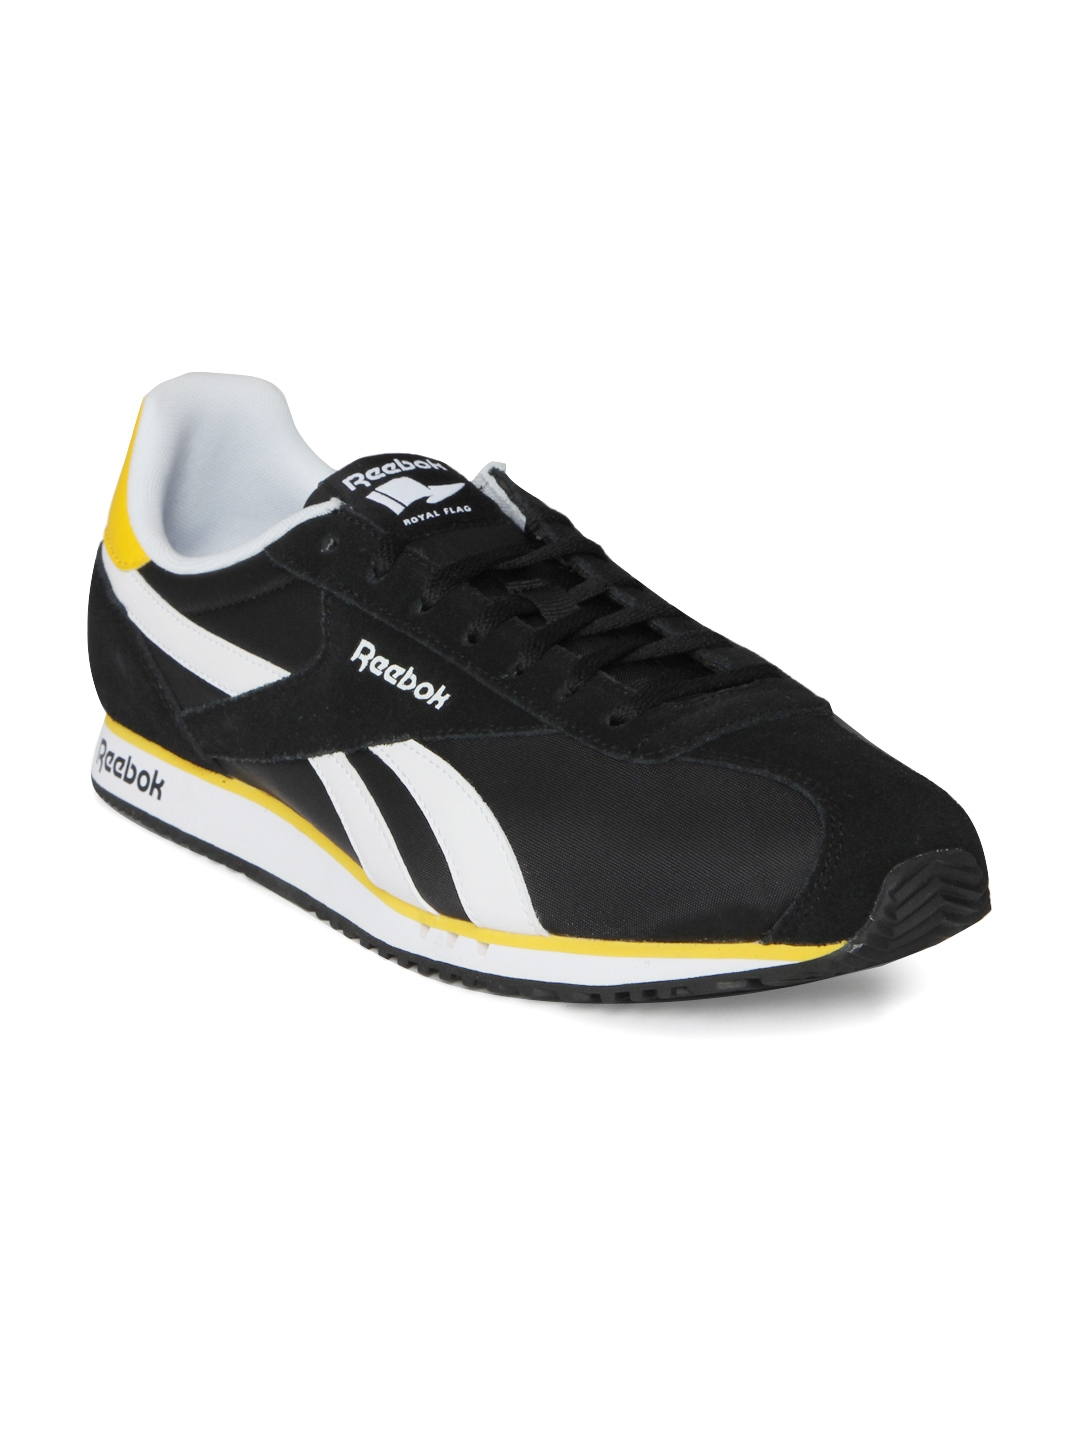 29c3d830dfbb3 Buy Reebok Men Black Royal Alperez Dash Running Shoes - Sports Shoes ...